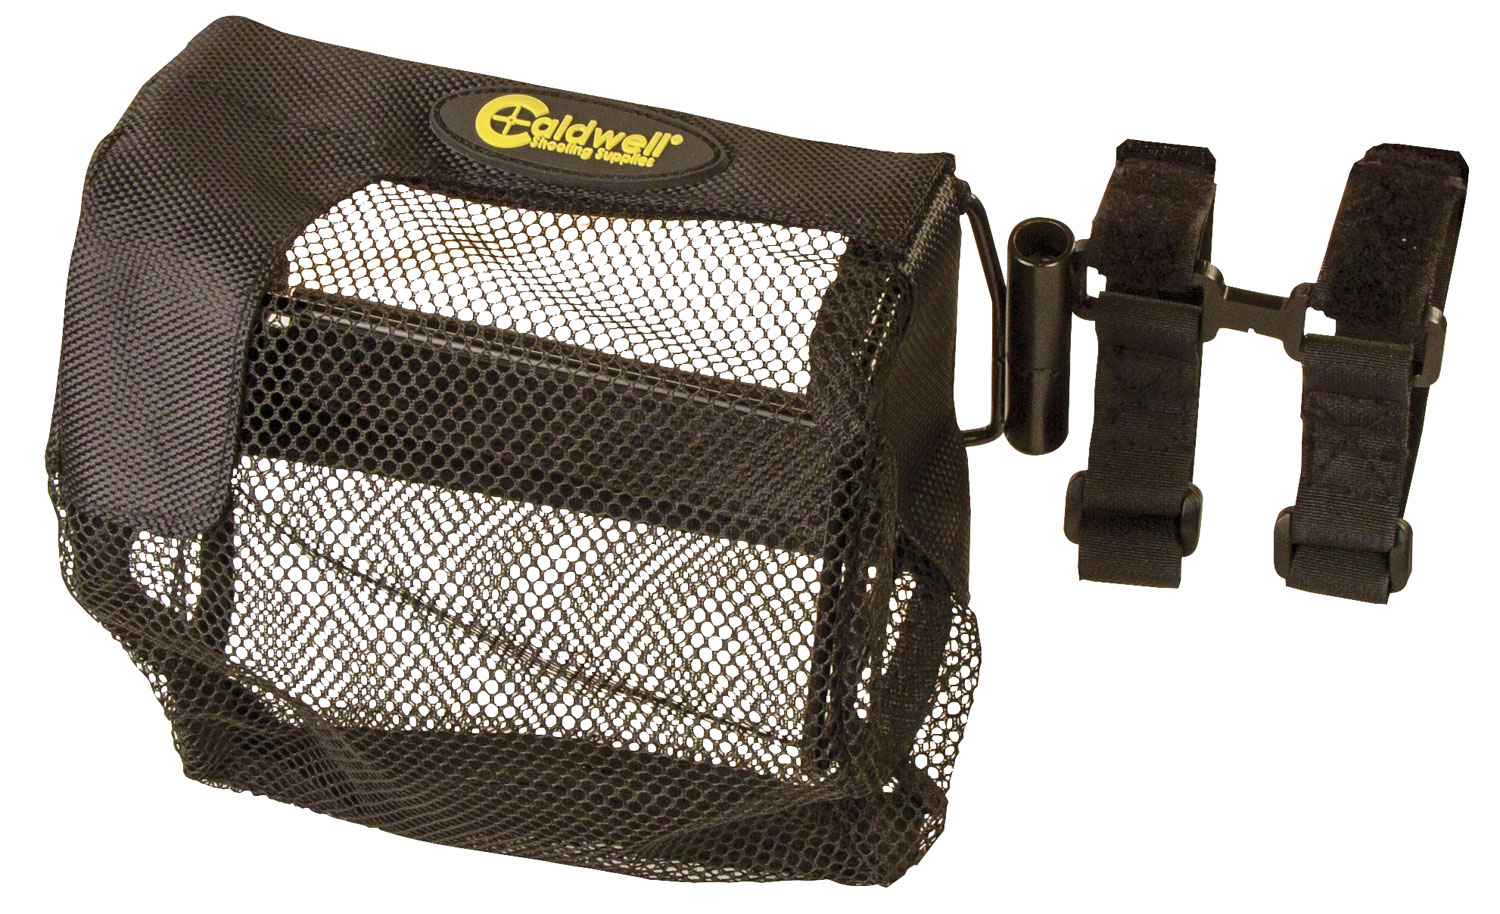 Caldwell 110038 Universal Brass Catcher  Mesh Black 100 Rounds